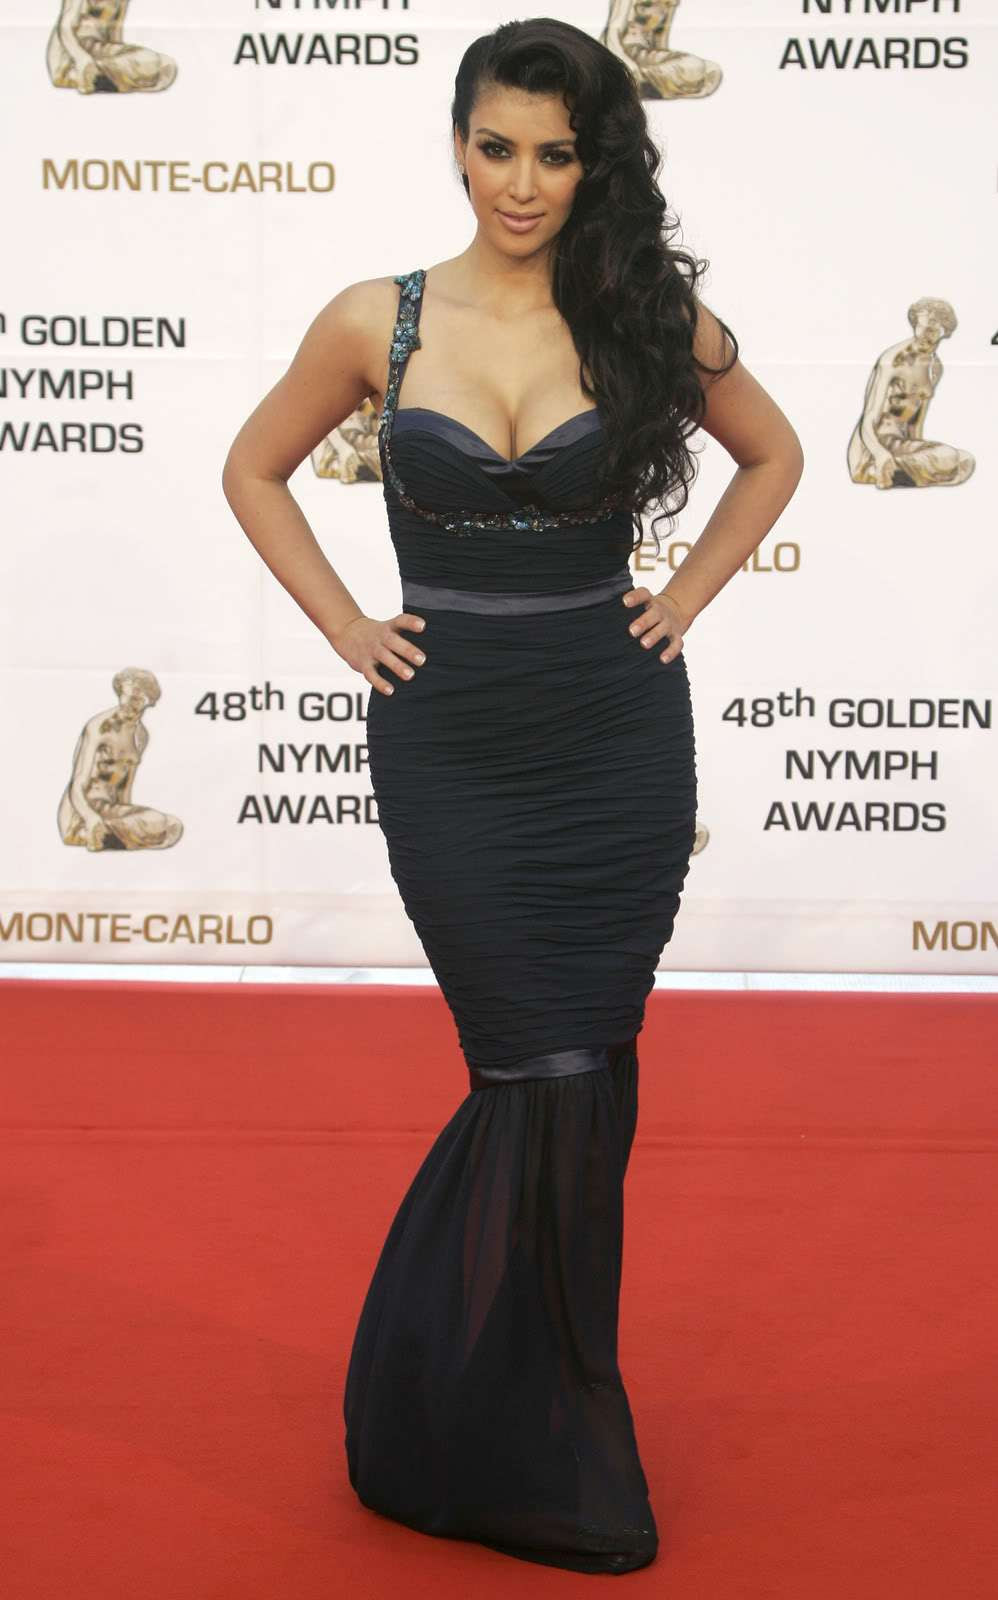 Kim Kardashian - The Golden Nymph Awards Ceremony - Sexy Actress Pictures | Hot Actress Pictures